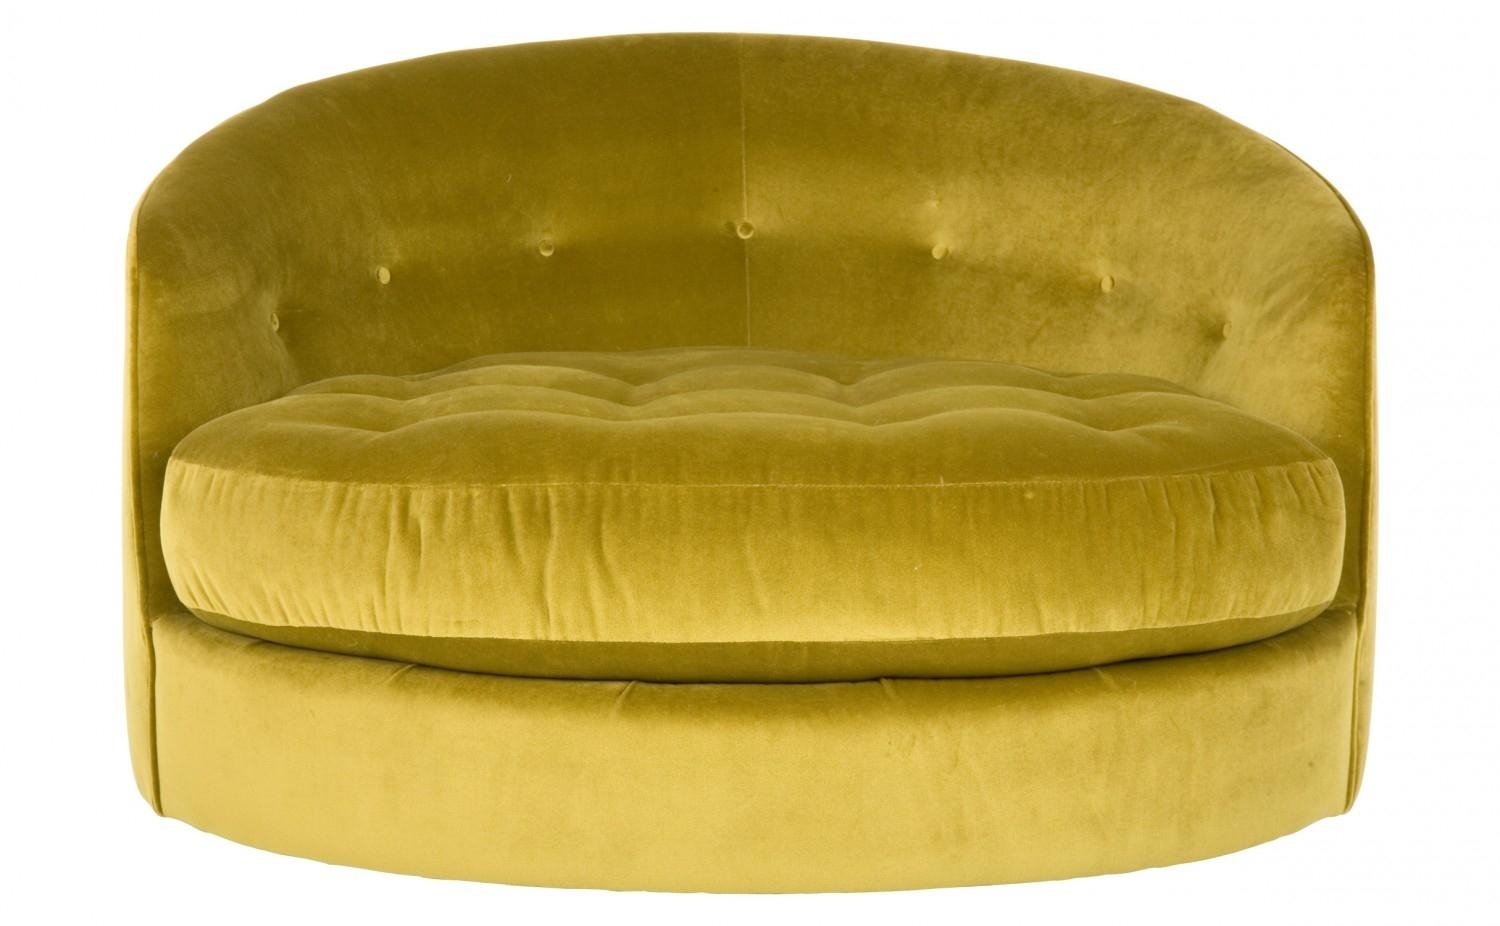 Round Swivel Sofa Chair 19 With Round Swivel Sofa Chair Inside Round Sofa Chair (Image 12 of 20)